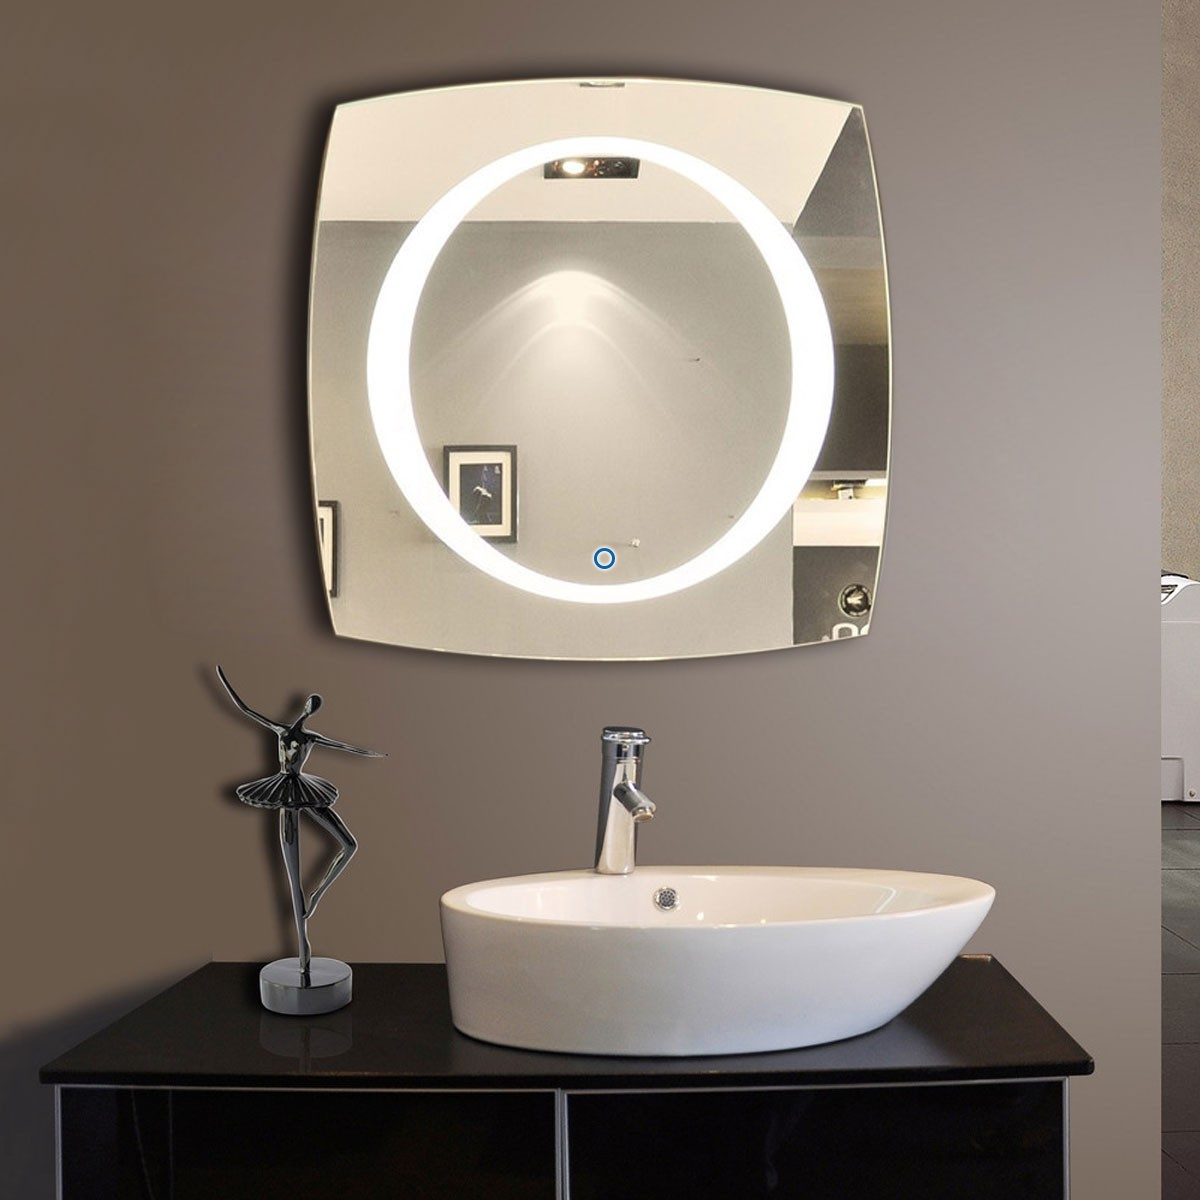 40 x 40 in horizontal and vertical led bathroom silvered mirror with touch button dk od n006. Black Bedroom Furniture Sets. Home Design Ideas